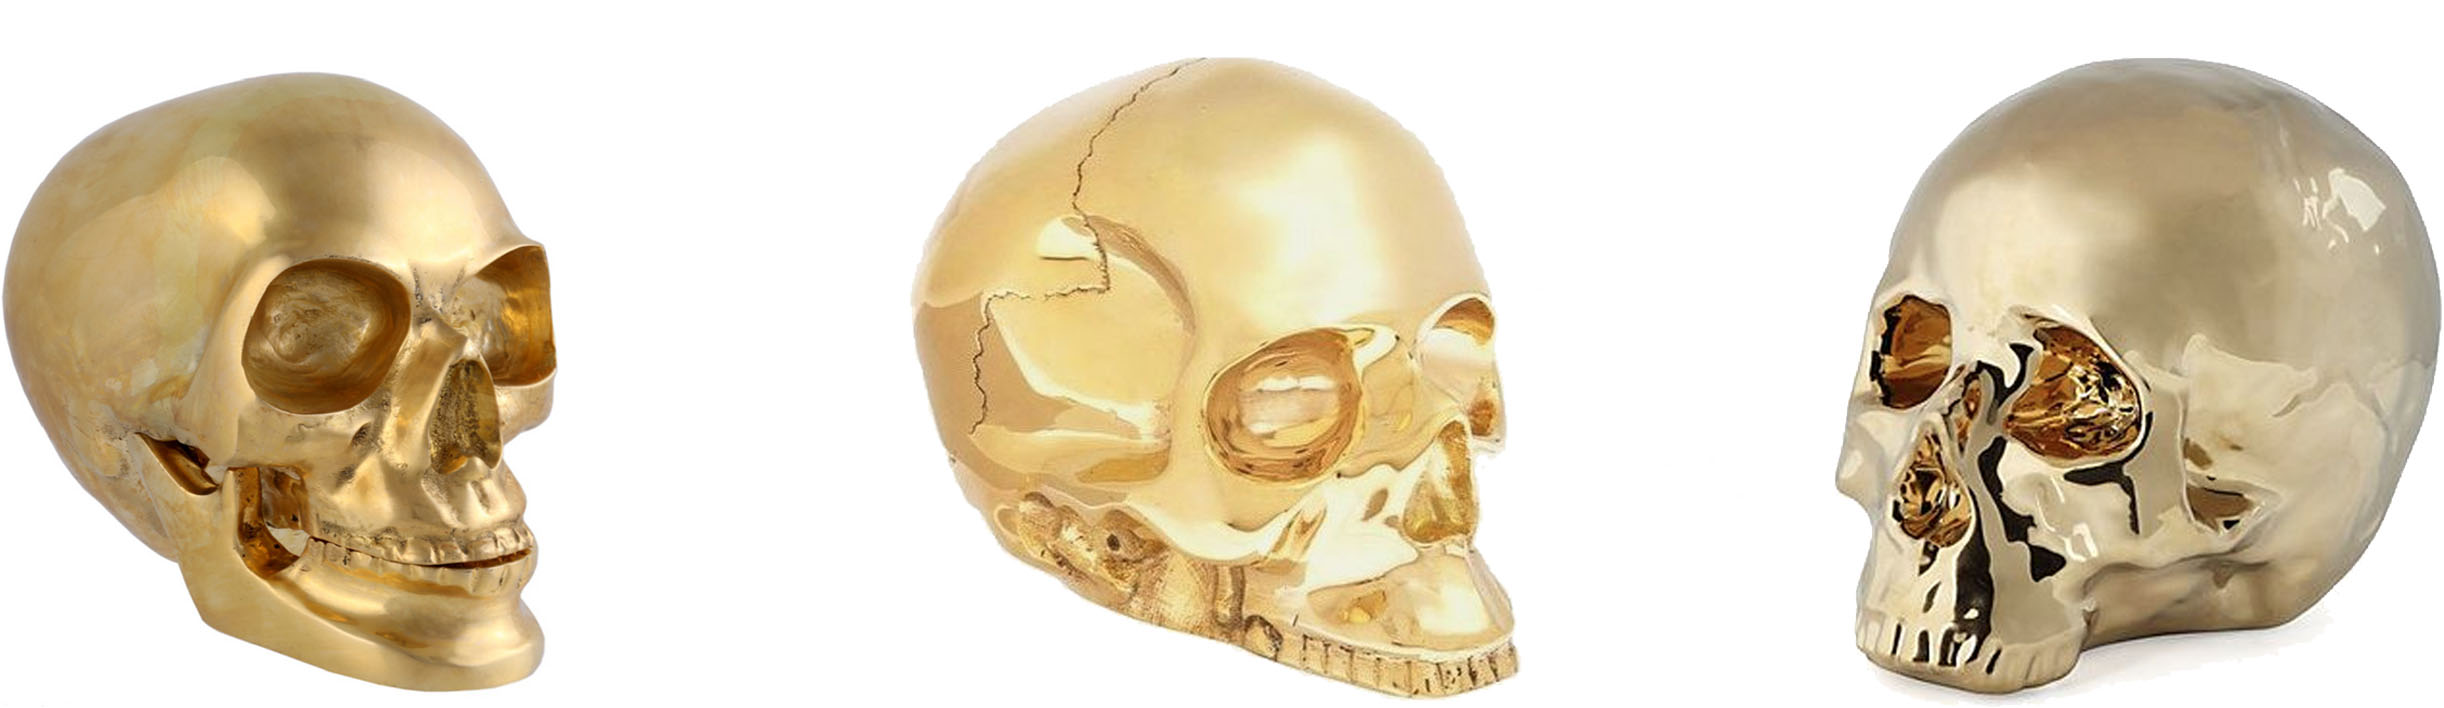 Skull Luxe For Less.jpg